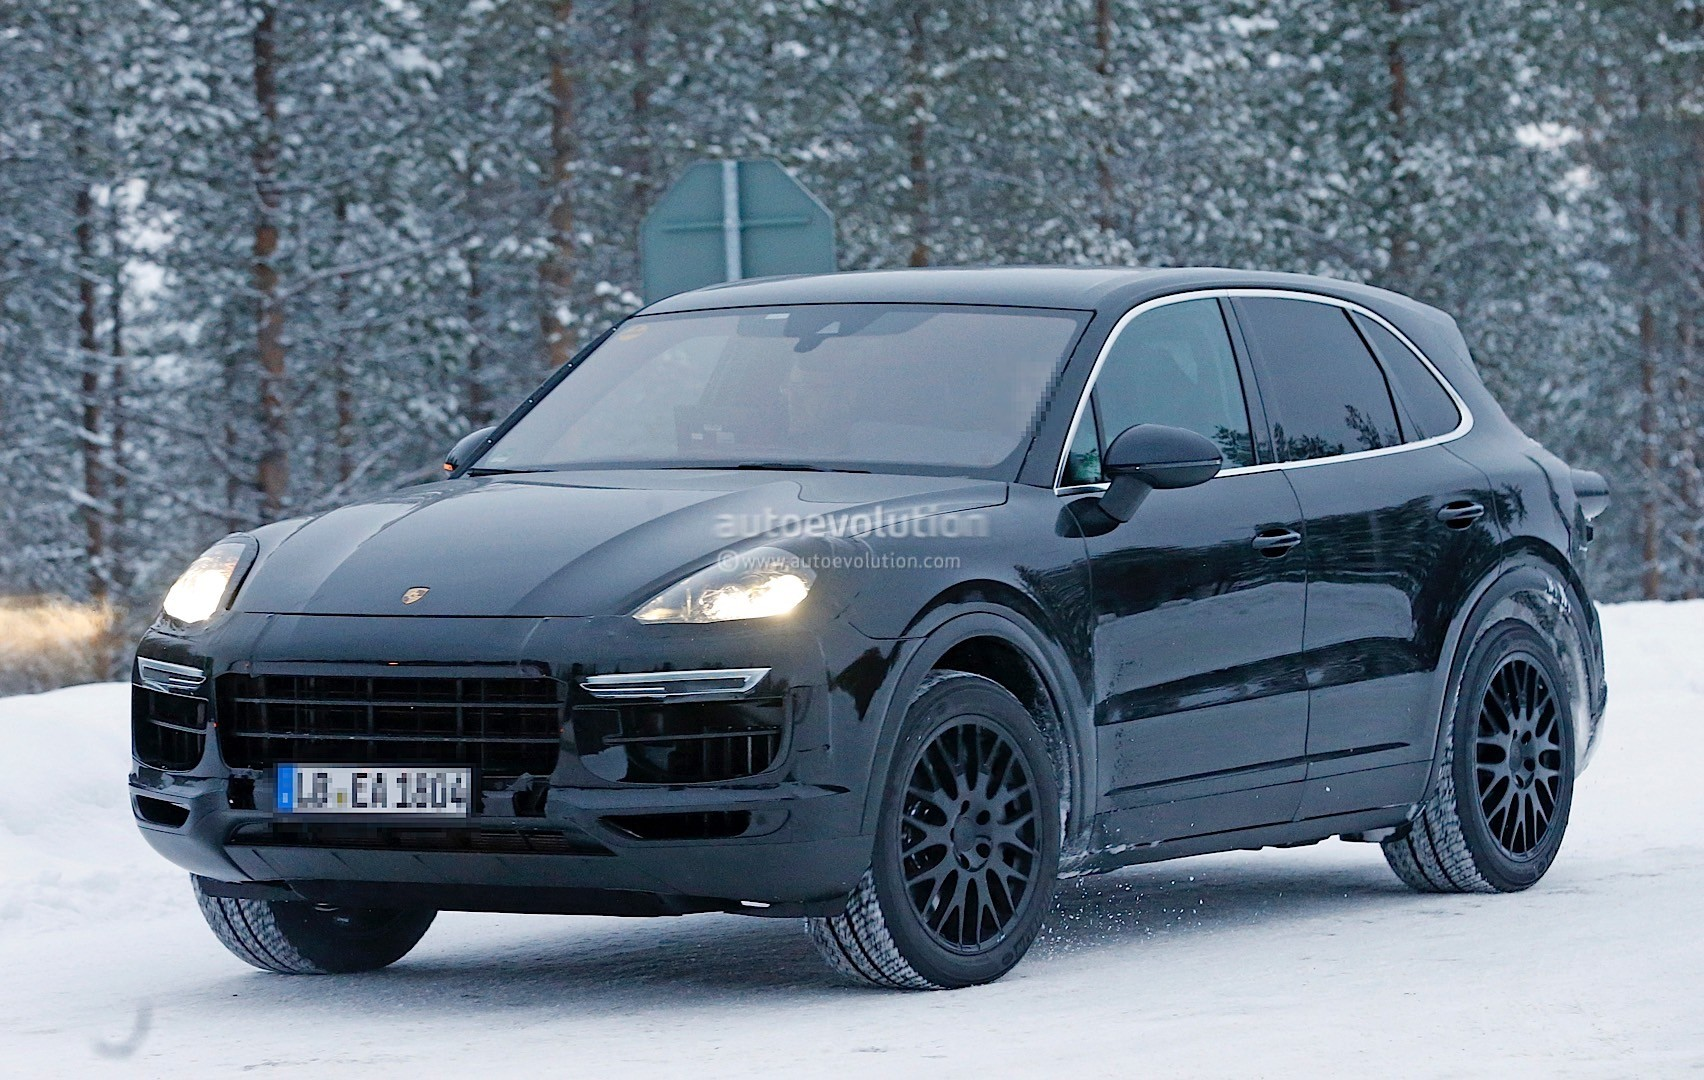 2018-porsche-cayenne-spied-once-more-enjoying-the-last-bits-of-winter_12